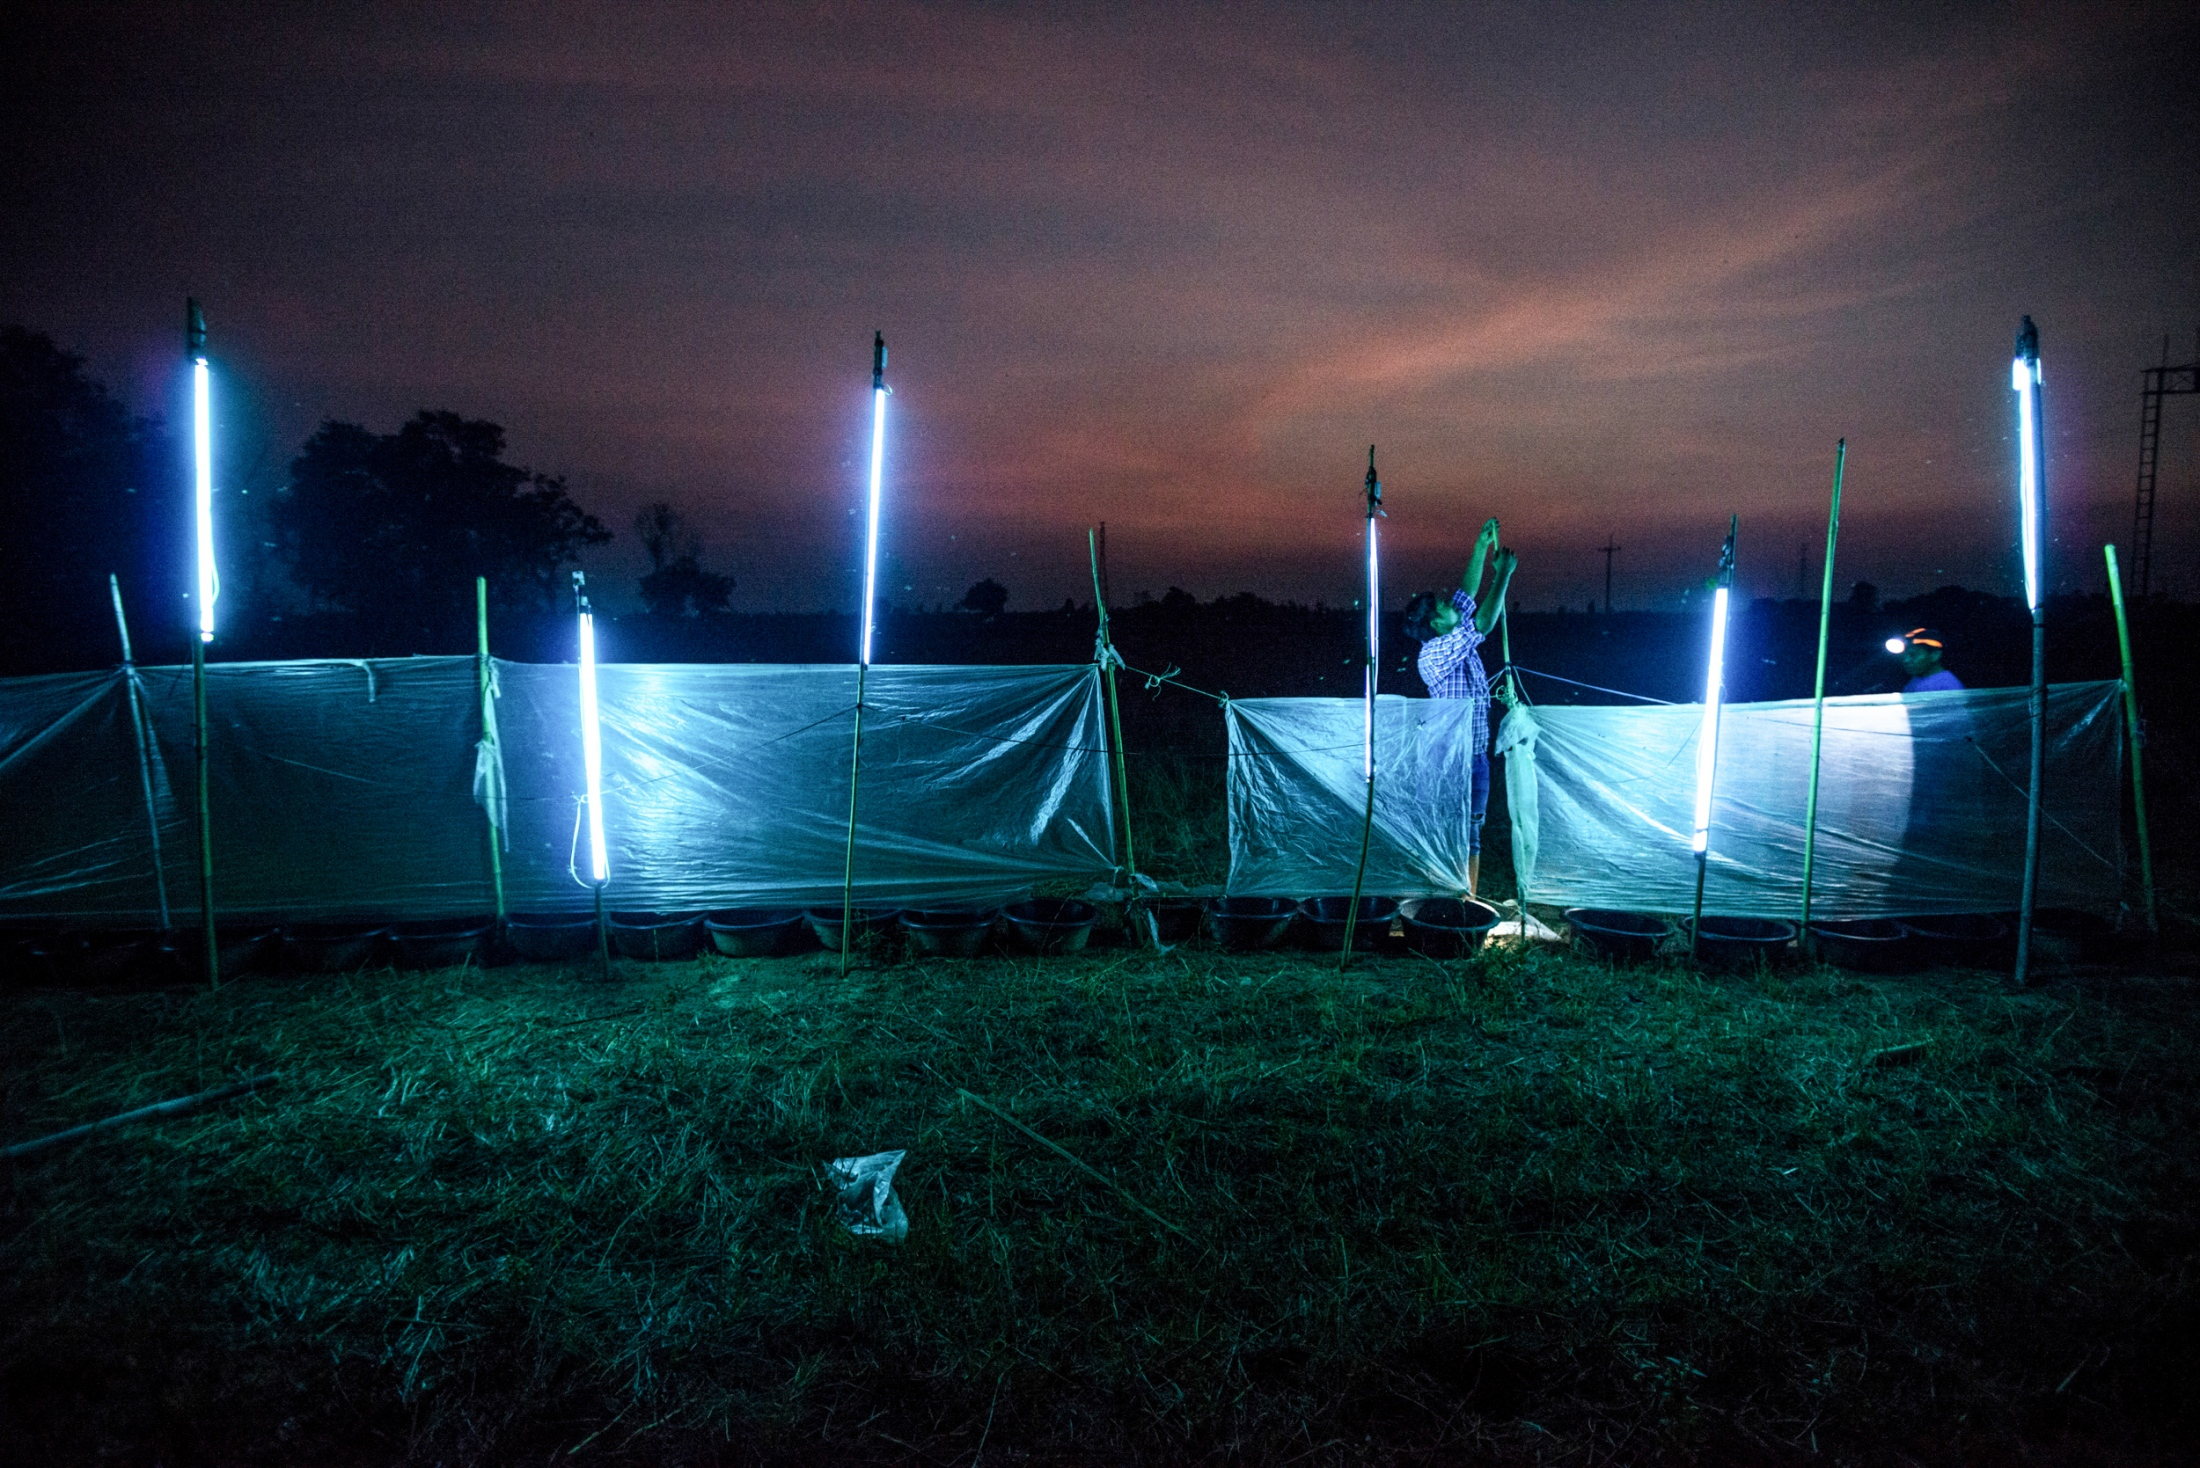 Civilian in Kaset Wisai, Roi Et, Thailand is setting up neon lights to trap bugs which is an alternative way to make a living, replacing agriculture in periods of heavy drought. May 5, 2016.